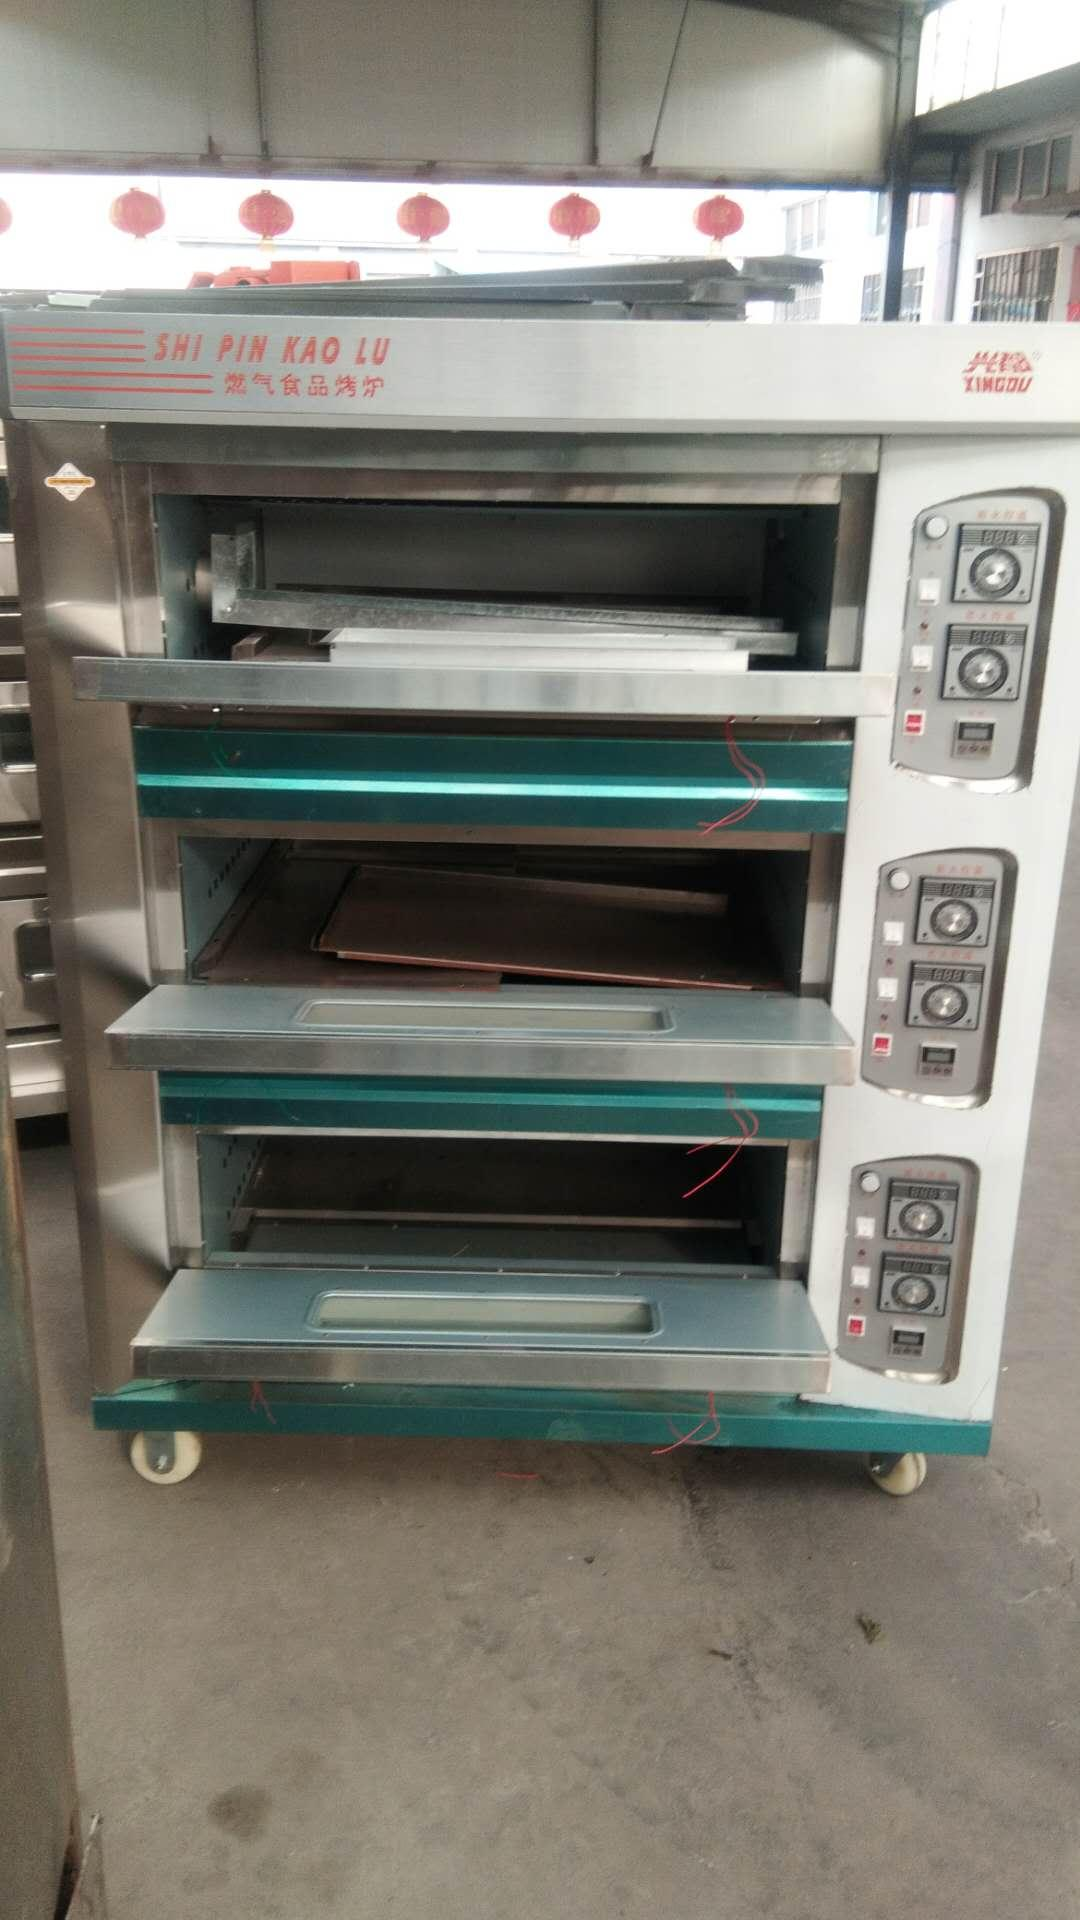 stainless steel cake oven 2